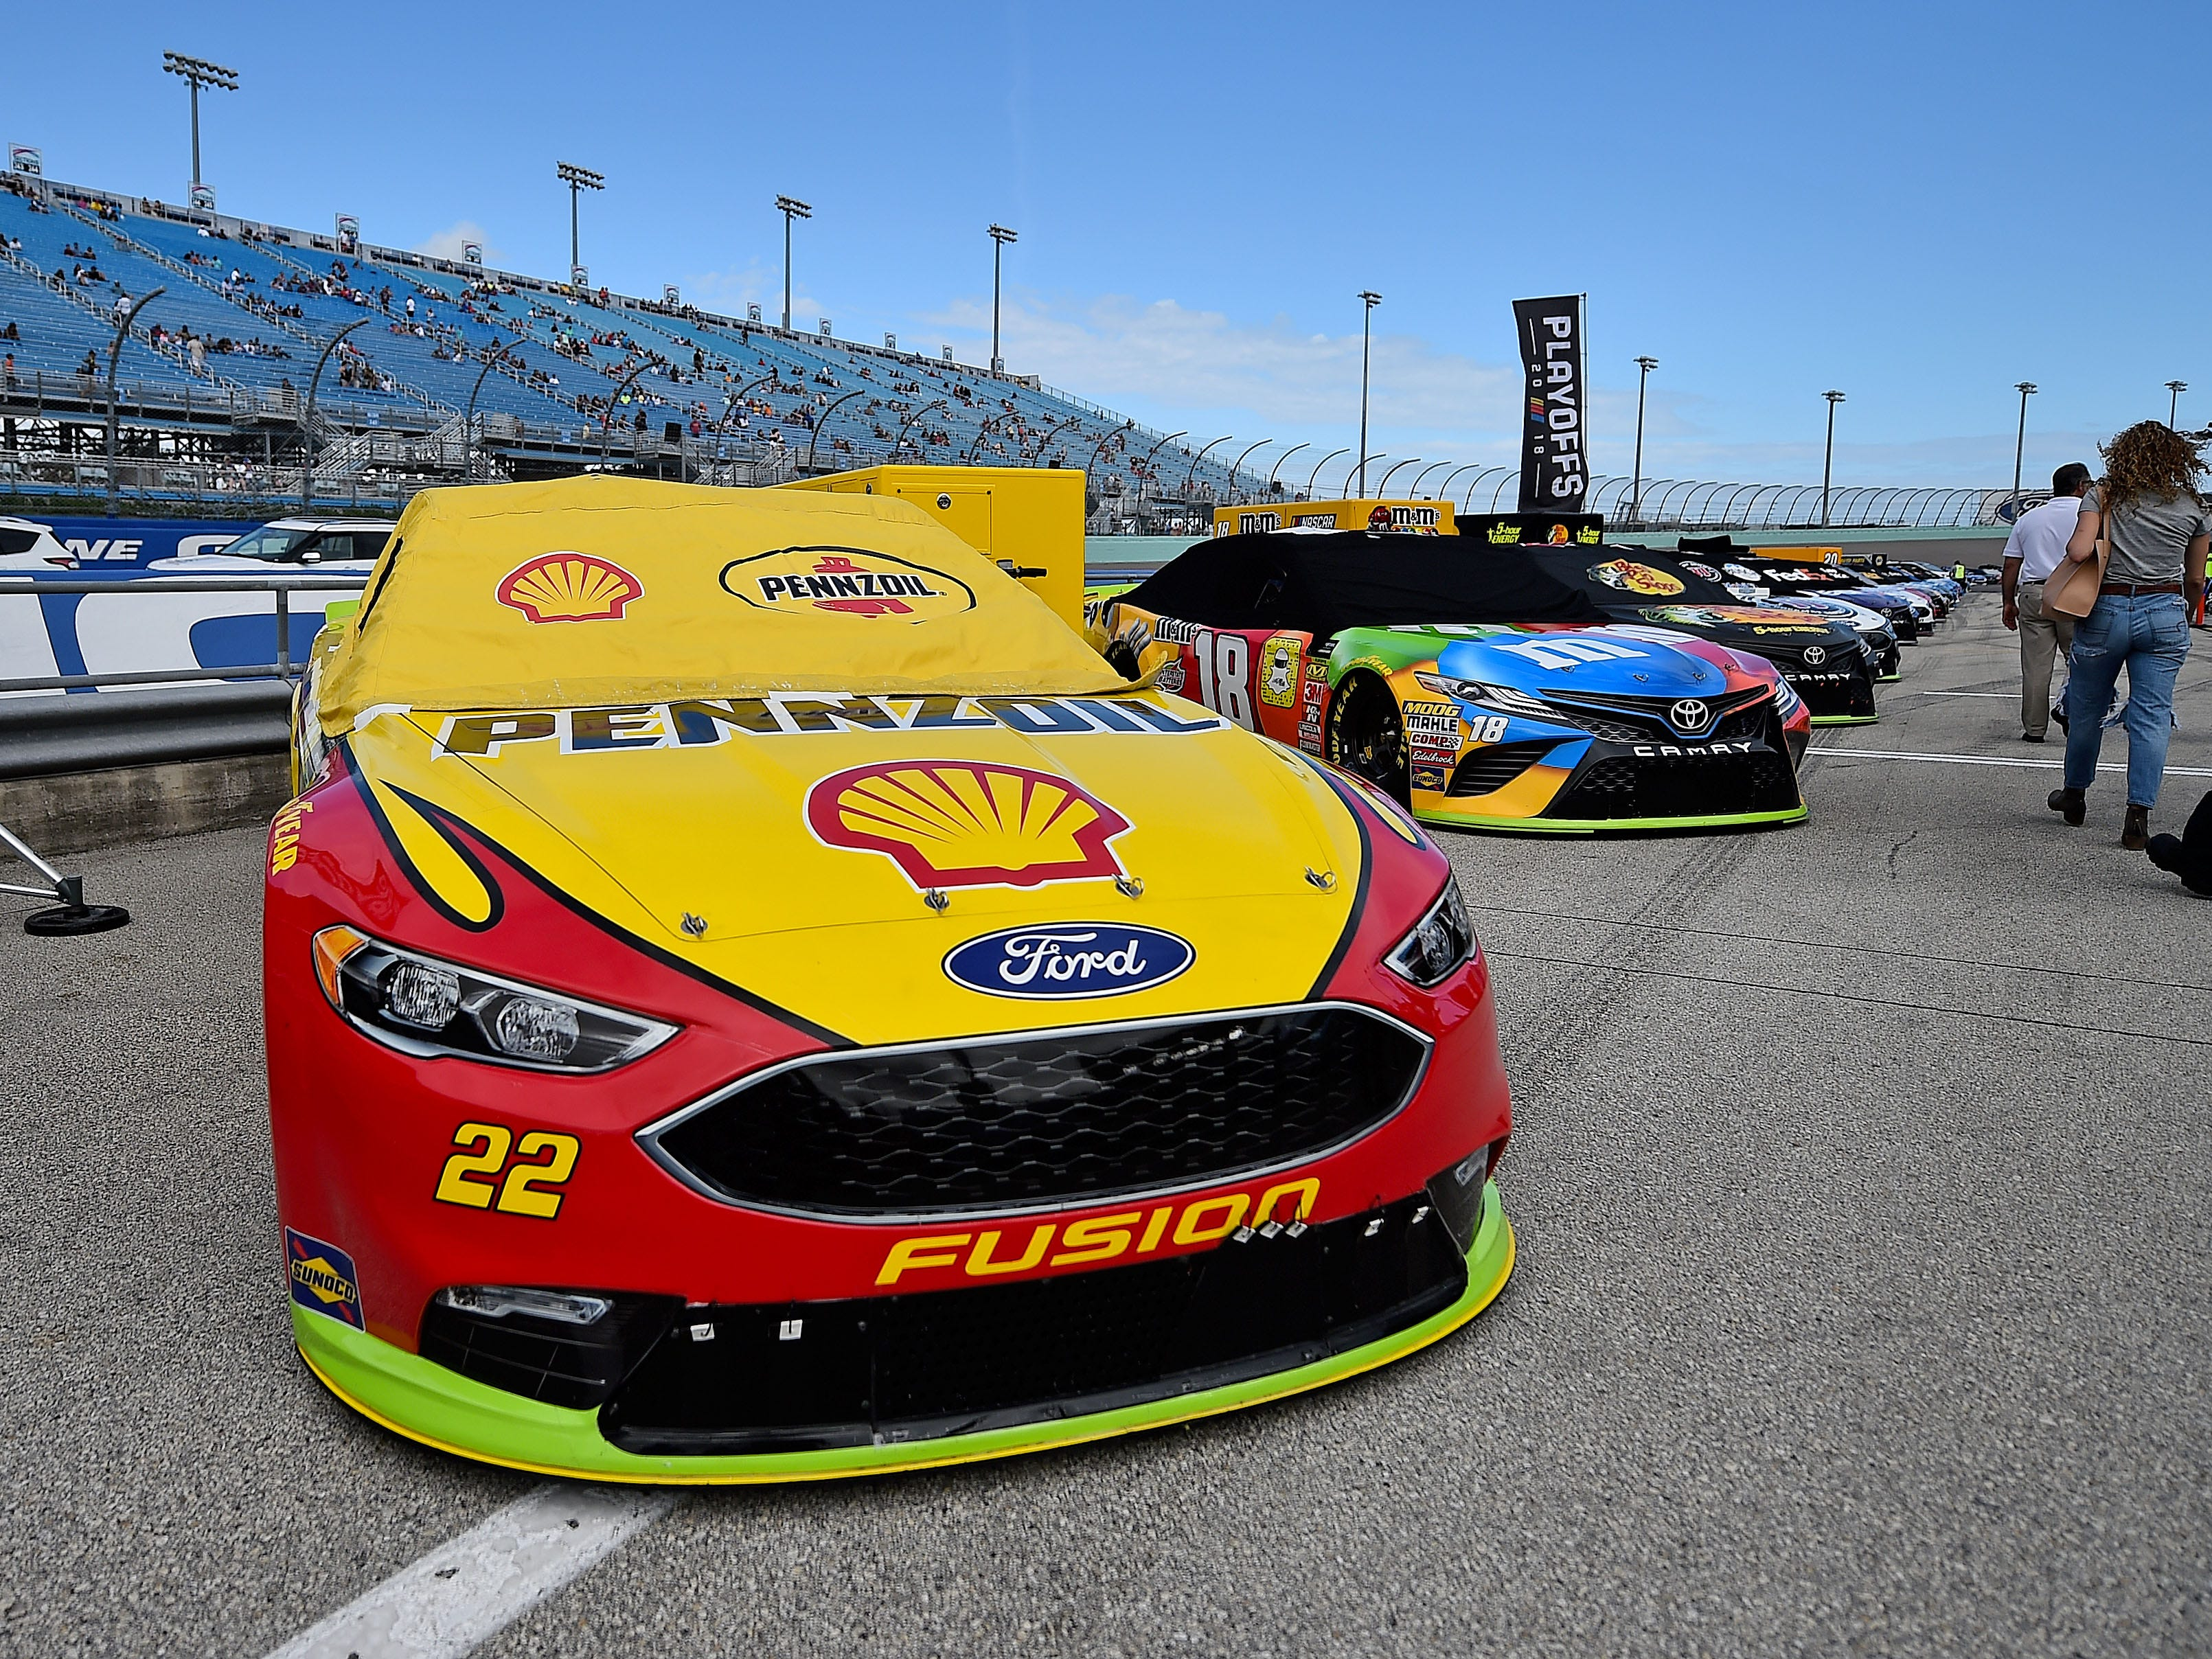 The championship cars of Joey Logano (No. 22 Team Penske Ford) and Kle Busch (No. 18 Joe Gibbs Racing Toyota) on pit road before the race.